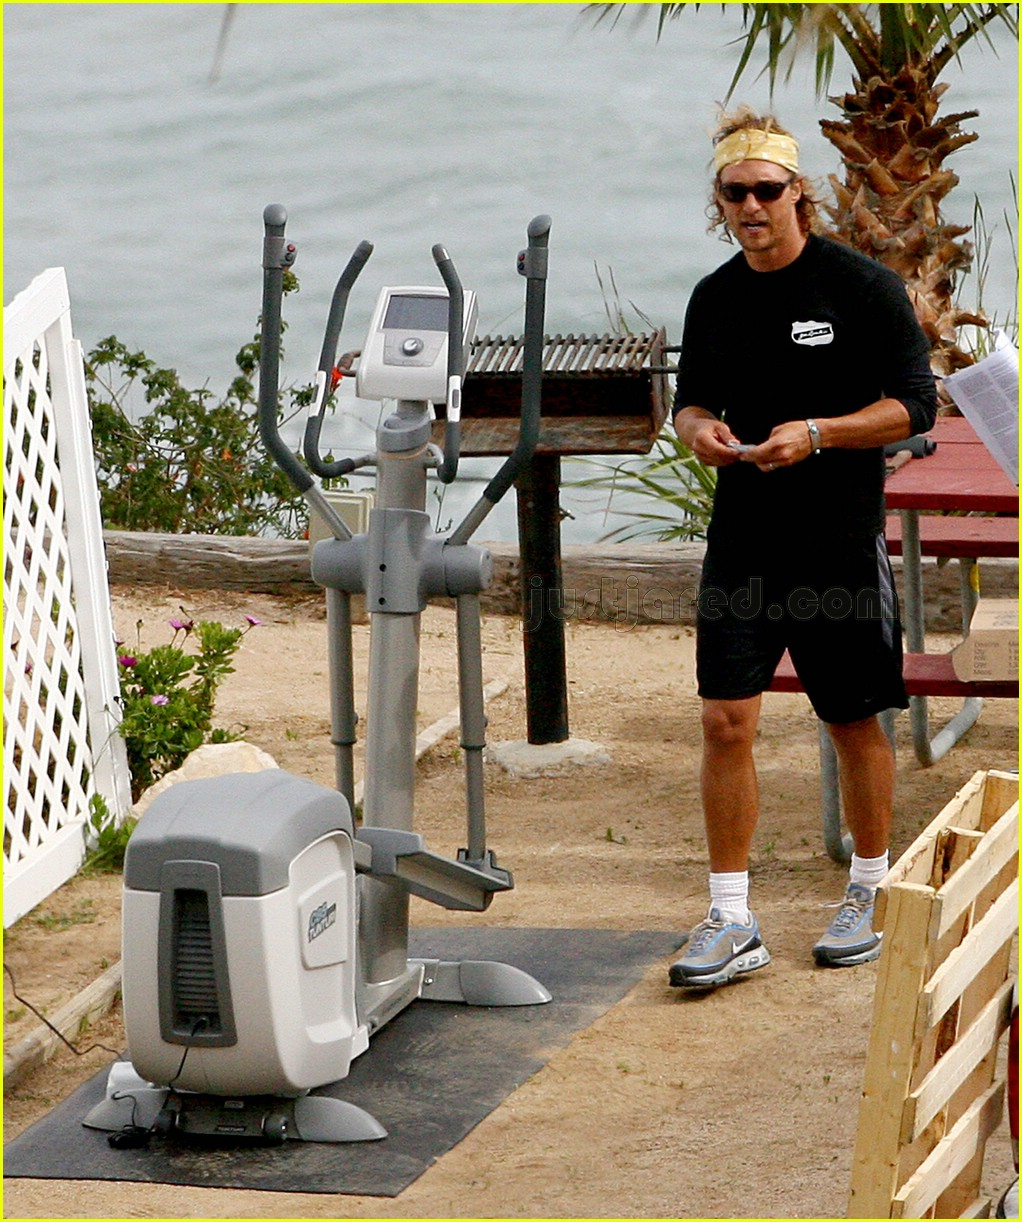 matthew mcconaughey elliptical exercise machine 10